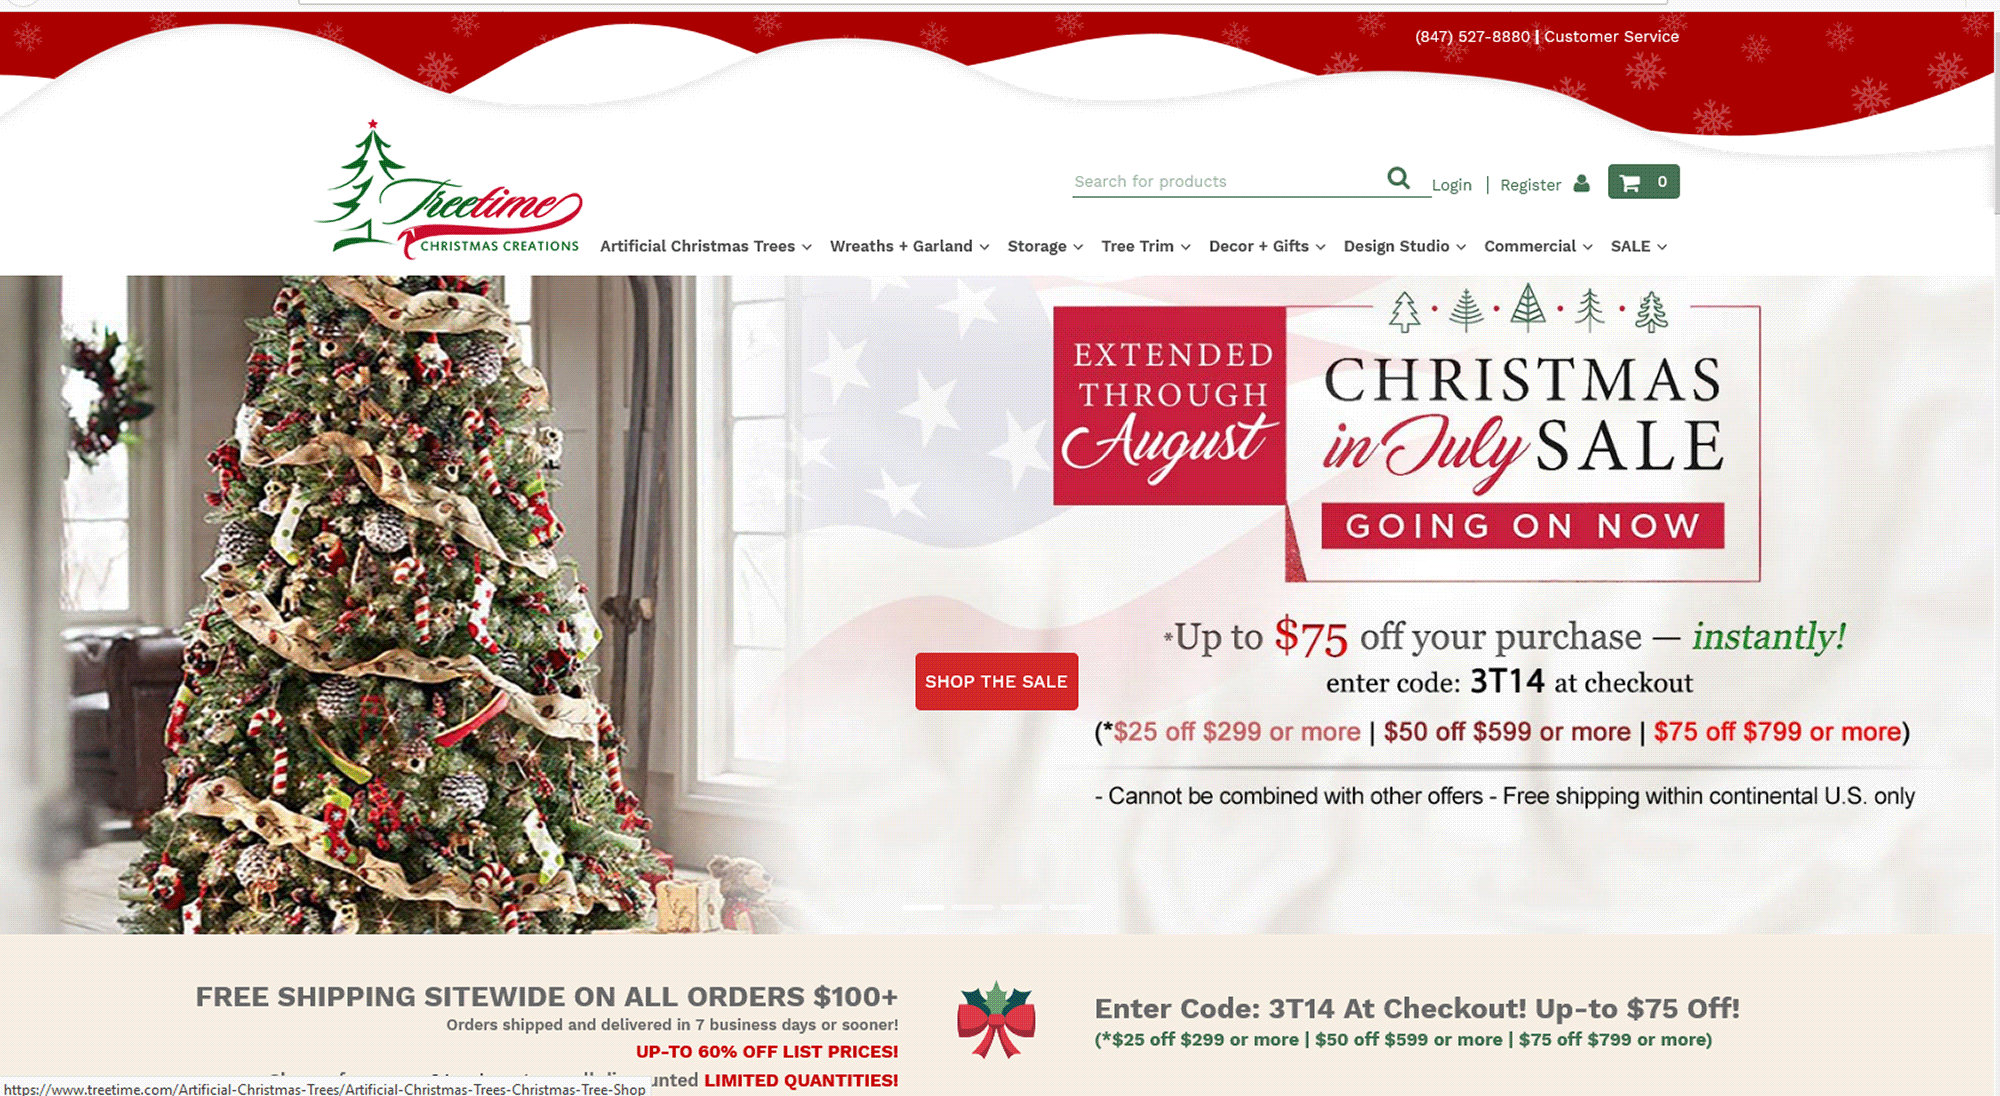 Christmas in July sale EXTENDED at Treetime Christmas Creations